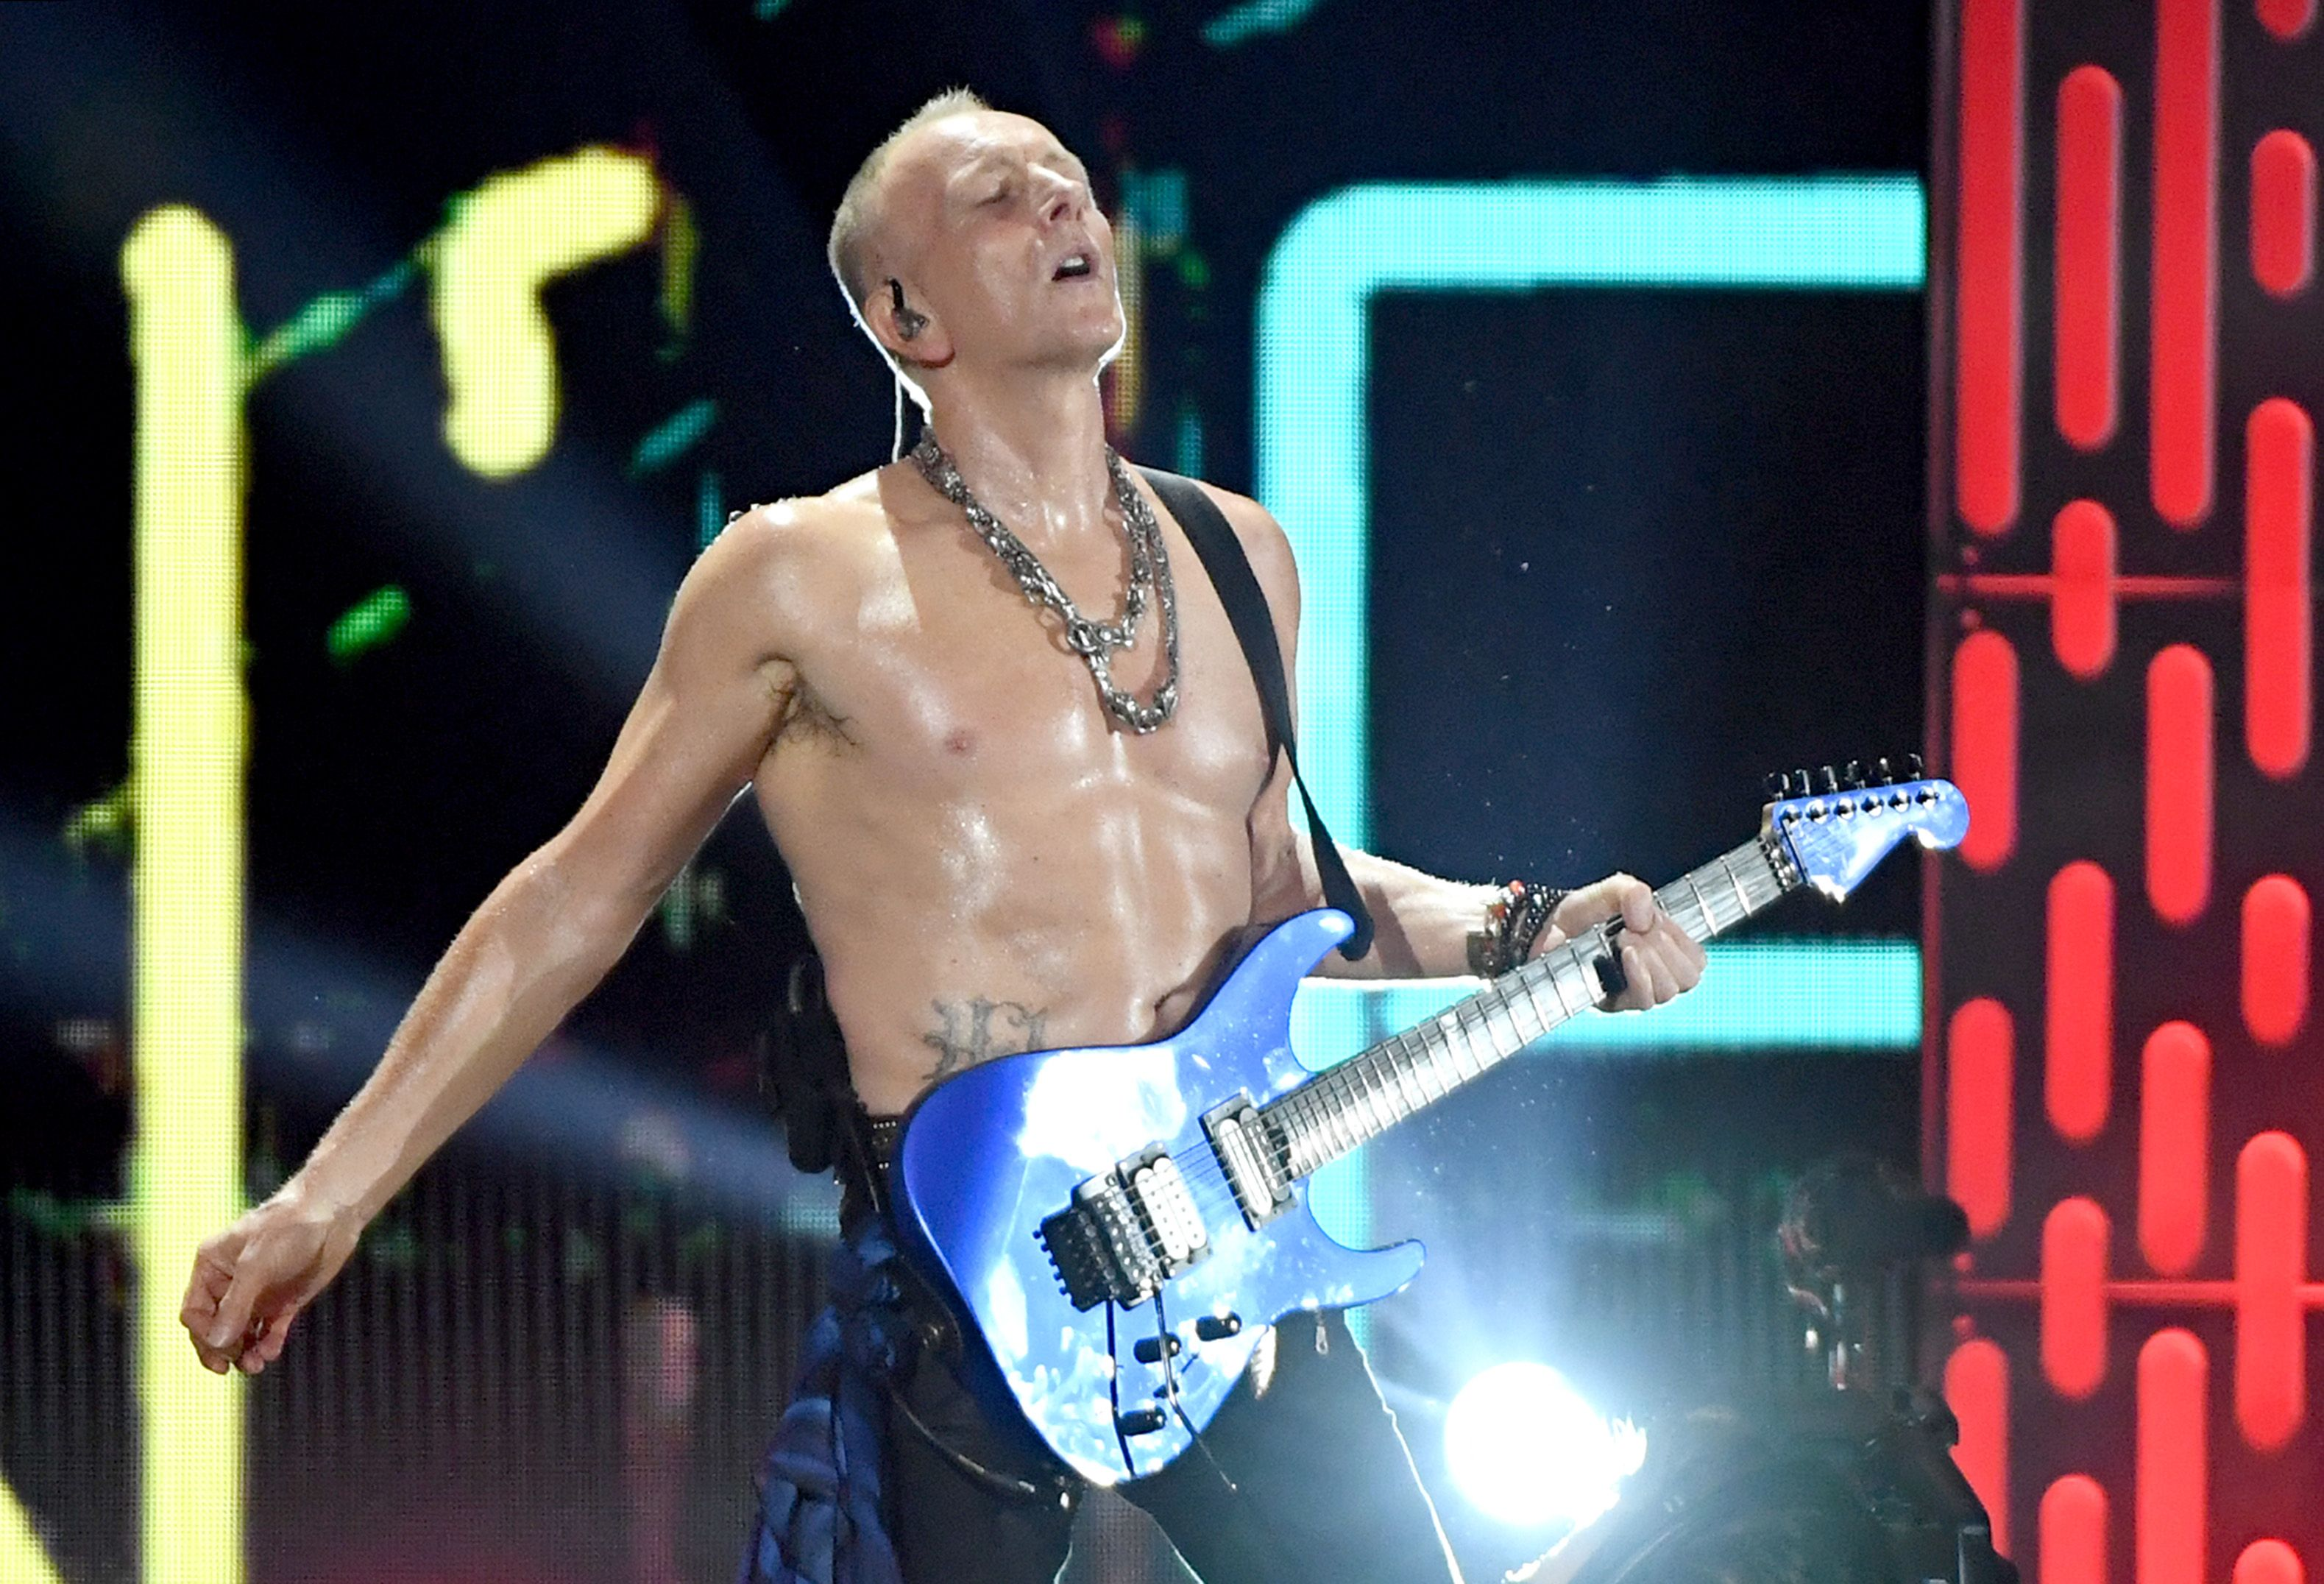 Def Leppard Guitarist Phil Collen Is Doing A 30 Day Workout